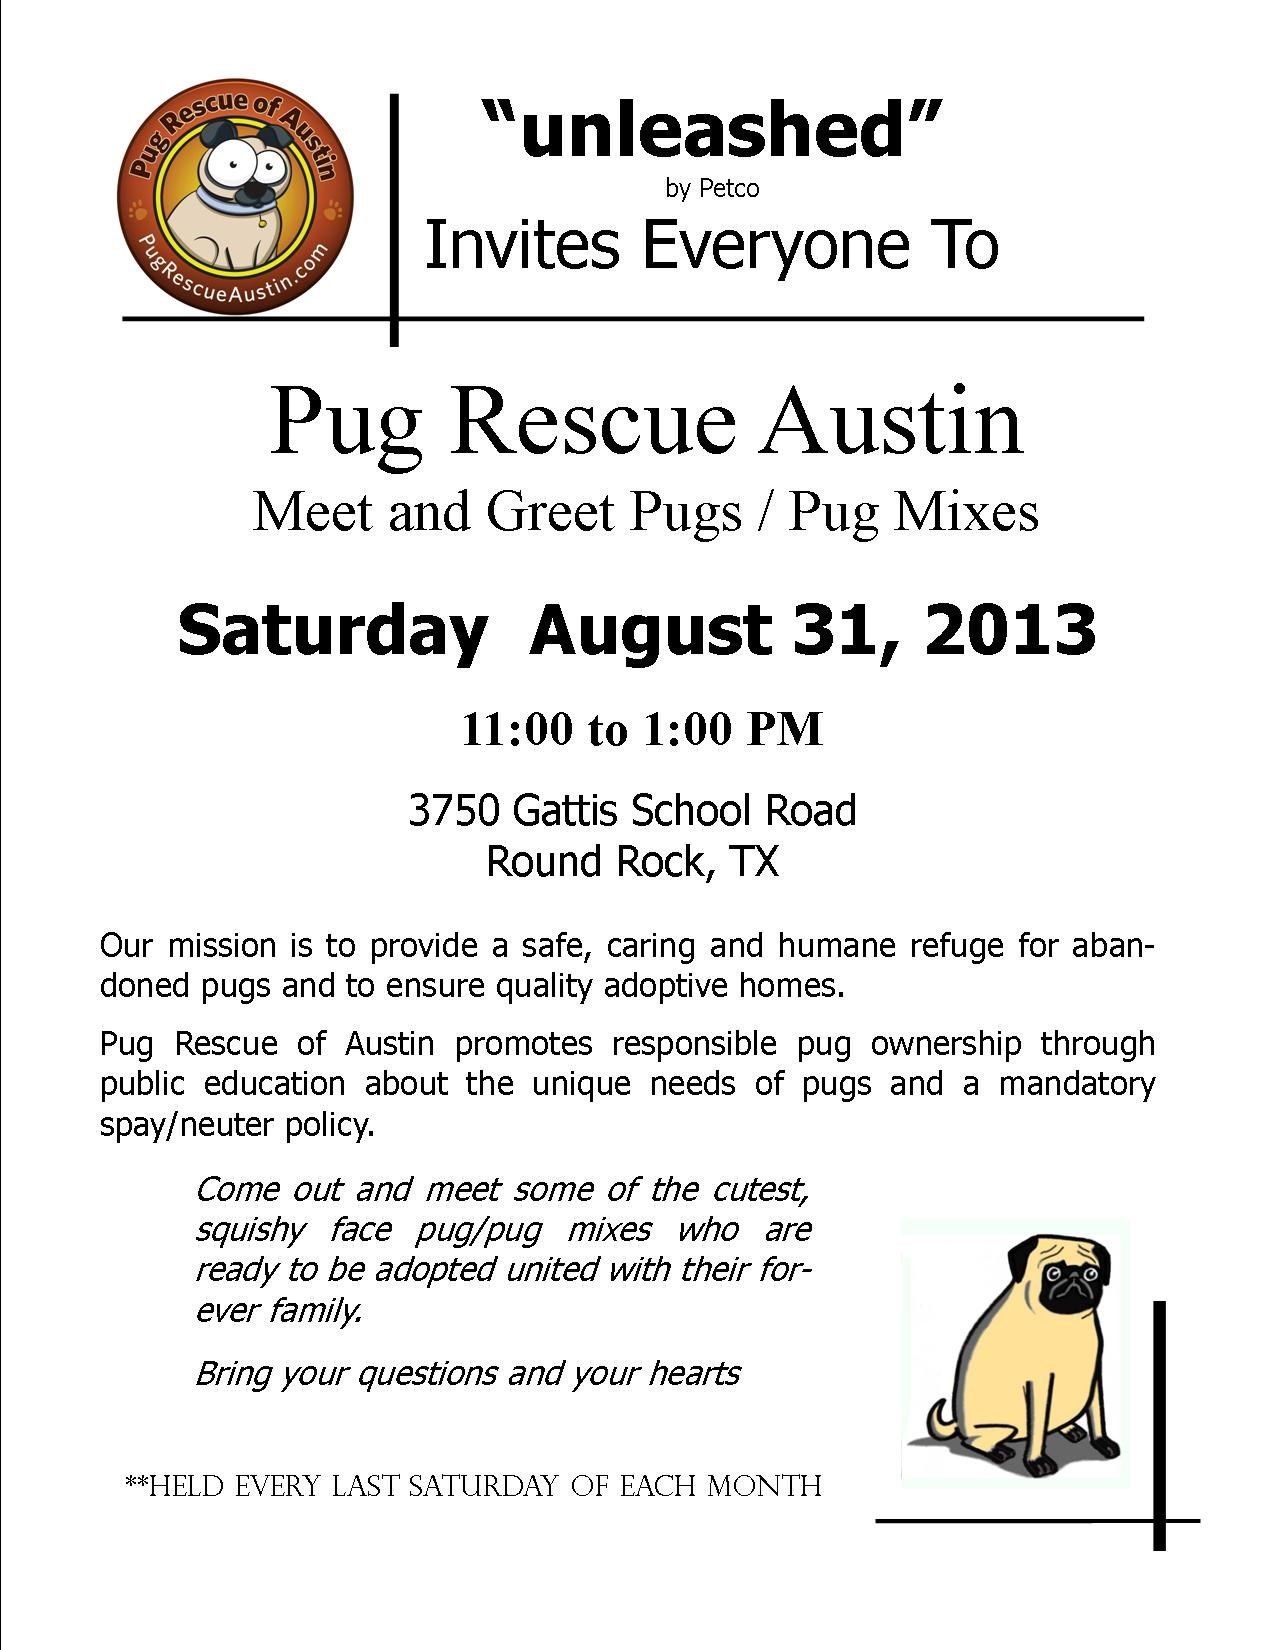 August 31st Event Pug Rescue Pug Mix Austin Events